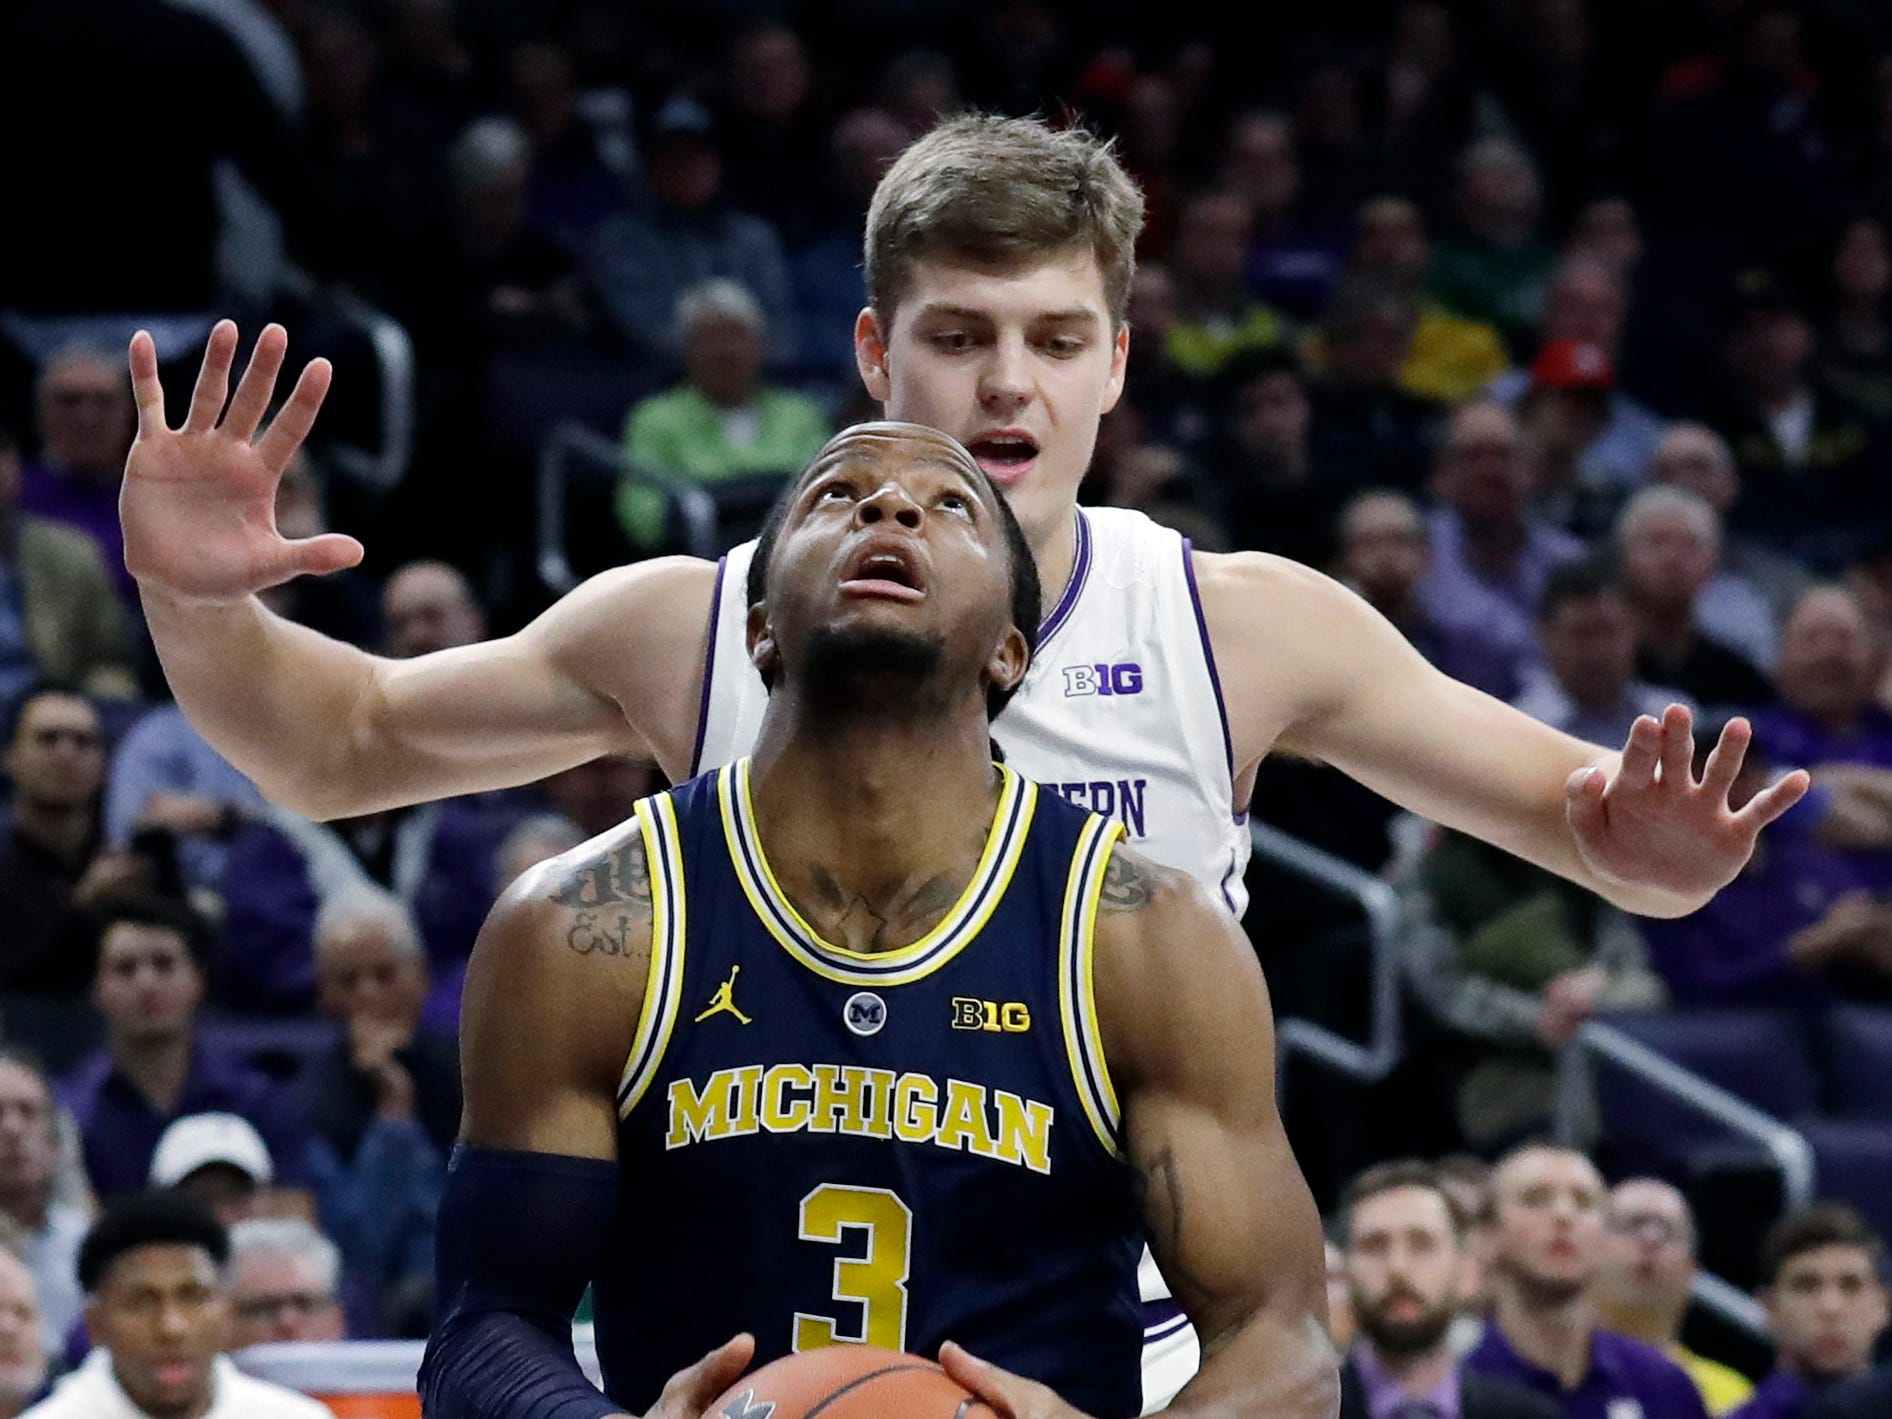 Michigan guard Zavier Simpson looks to the basket as Northwestern forward Miller Kopp guards during the first half Tuesday, Dec. 4, 2018, in Evanston, Ill.